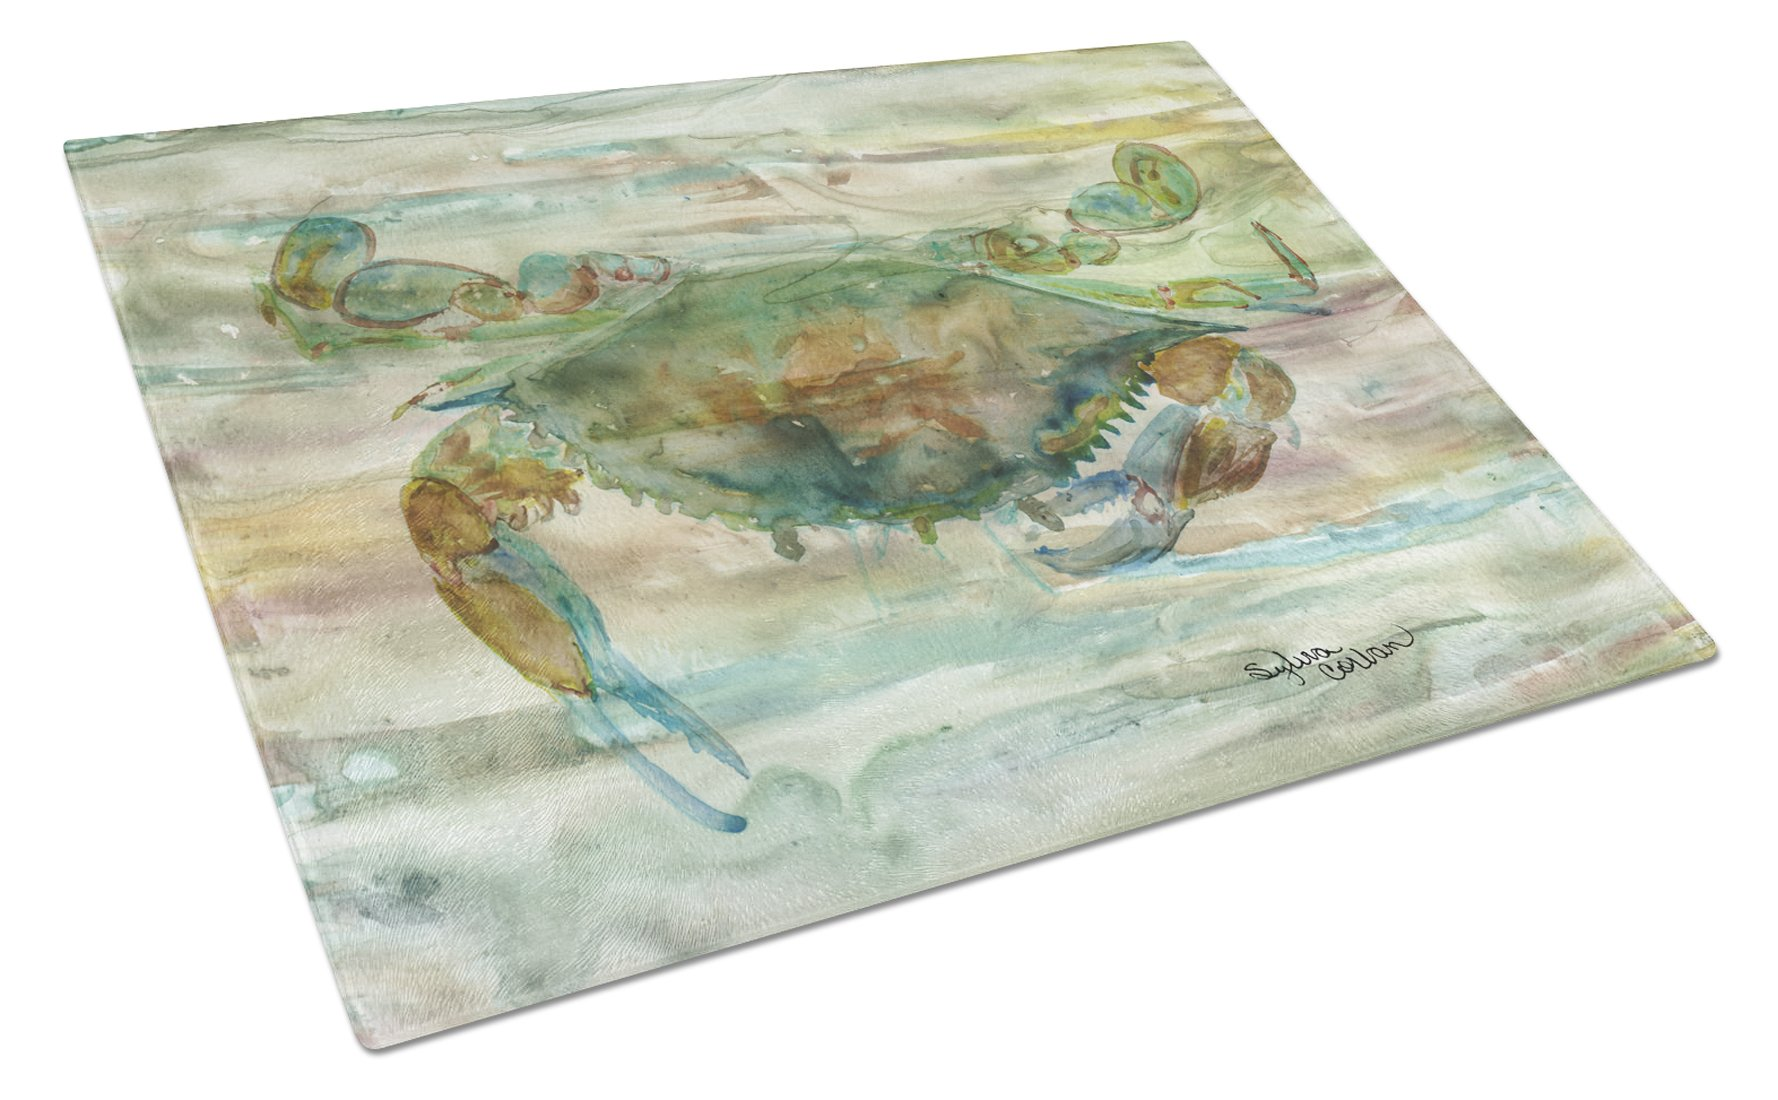 Crab a leg up Sunset Glass Cutting Board Large SC2015LCB by Caroline's Treasures